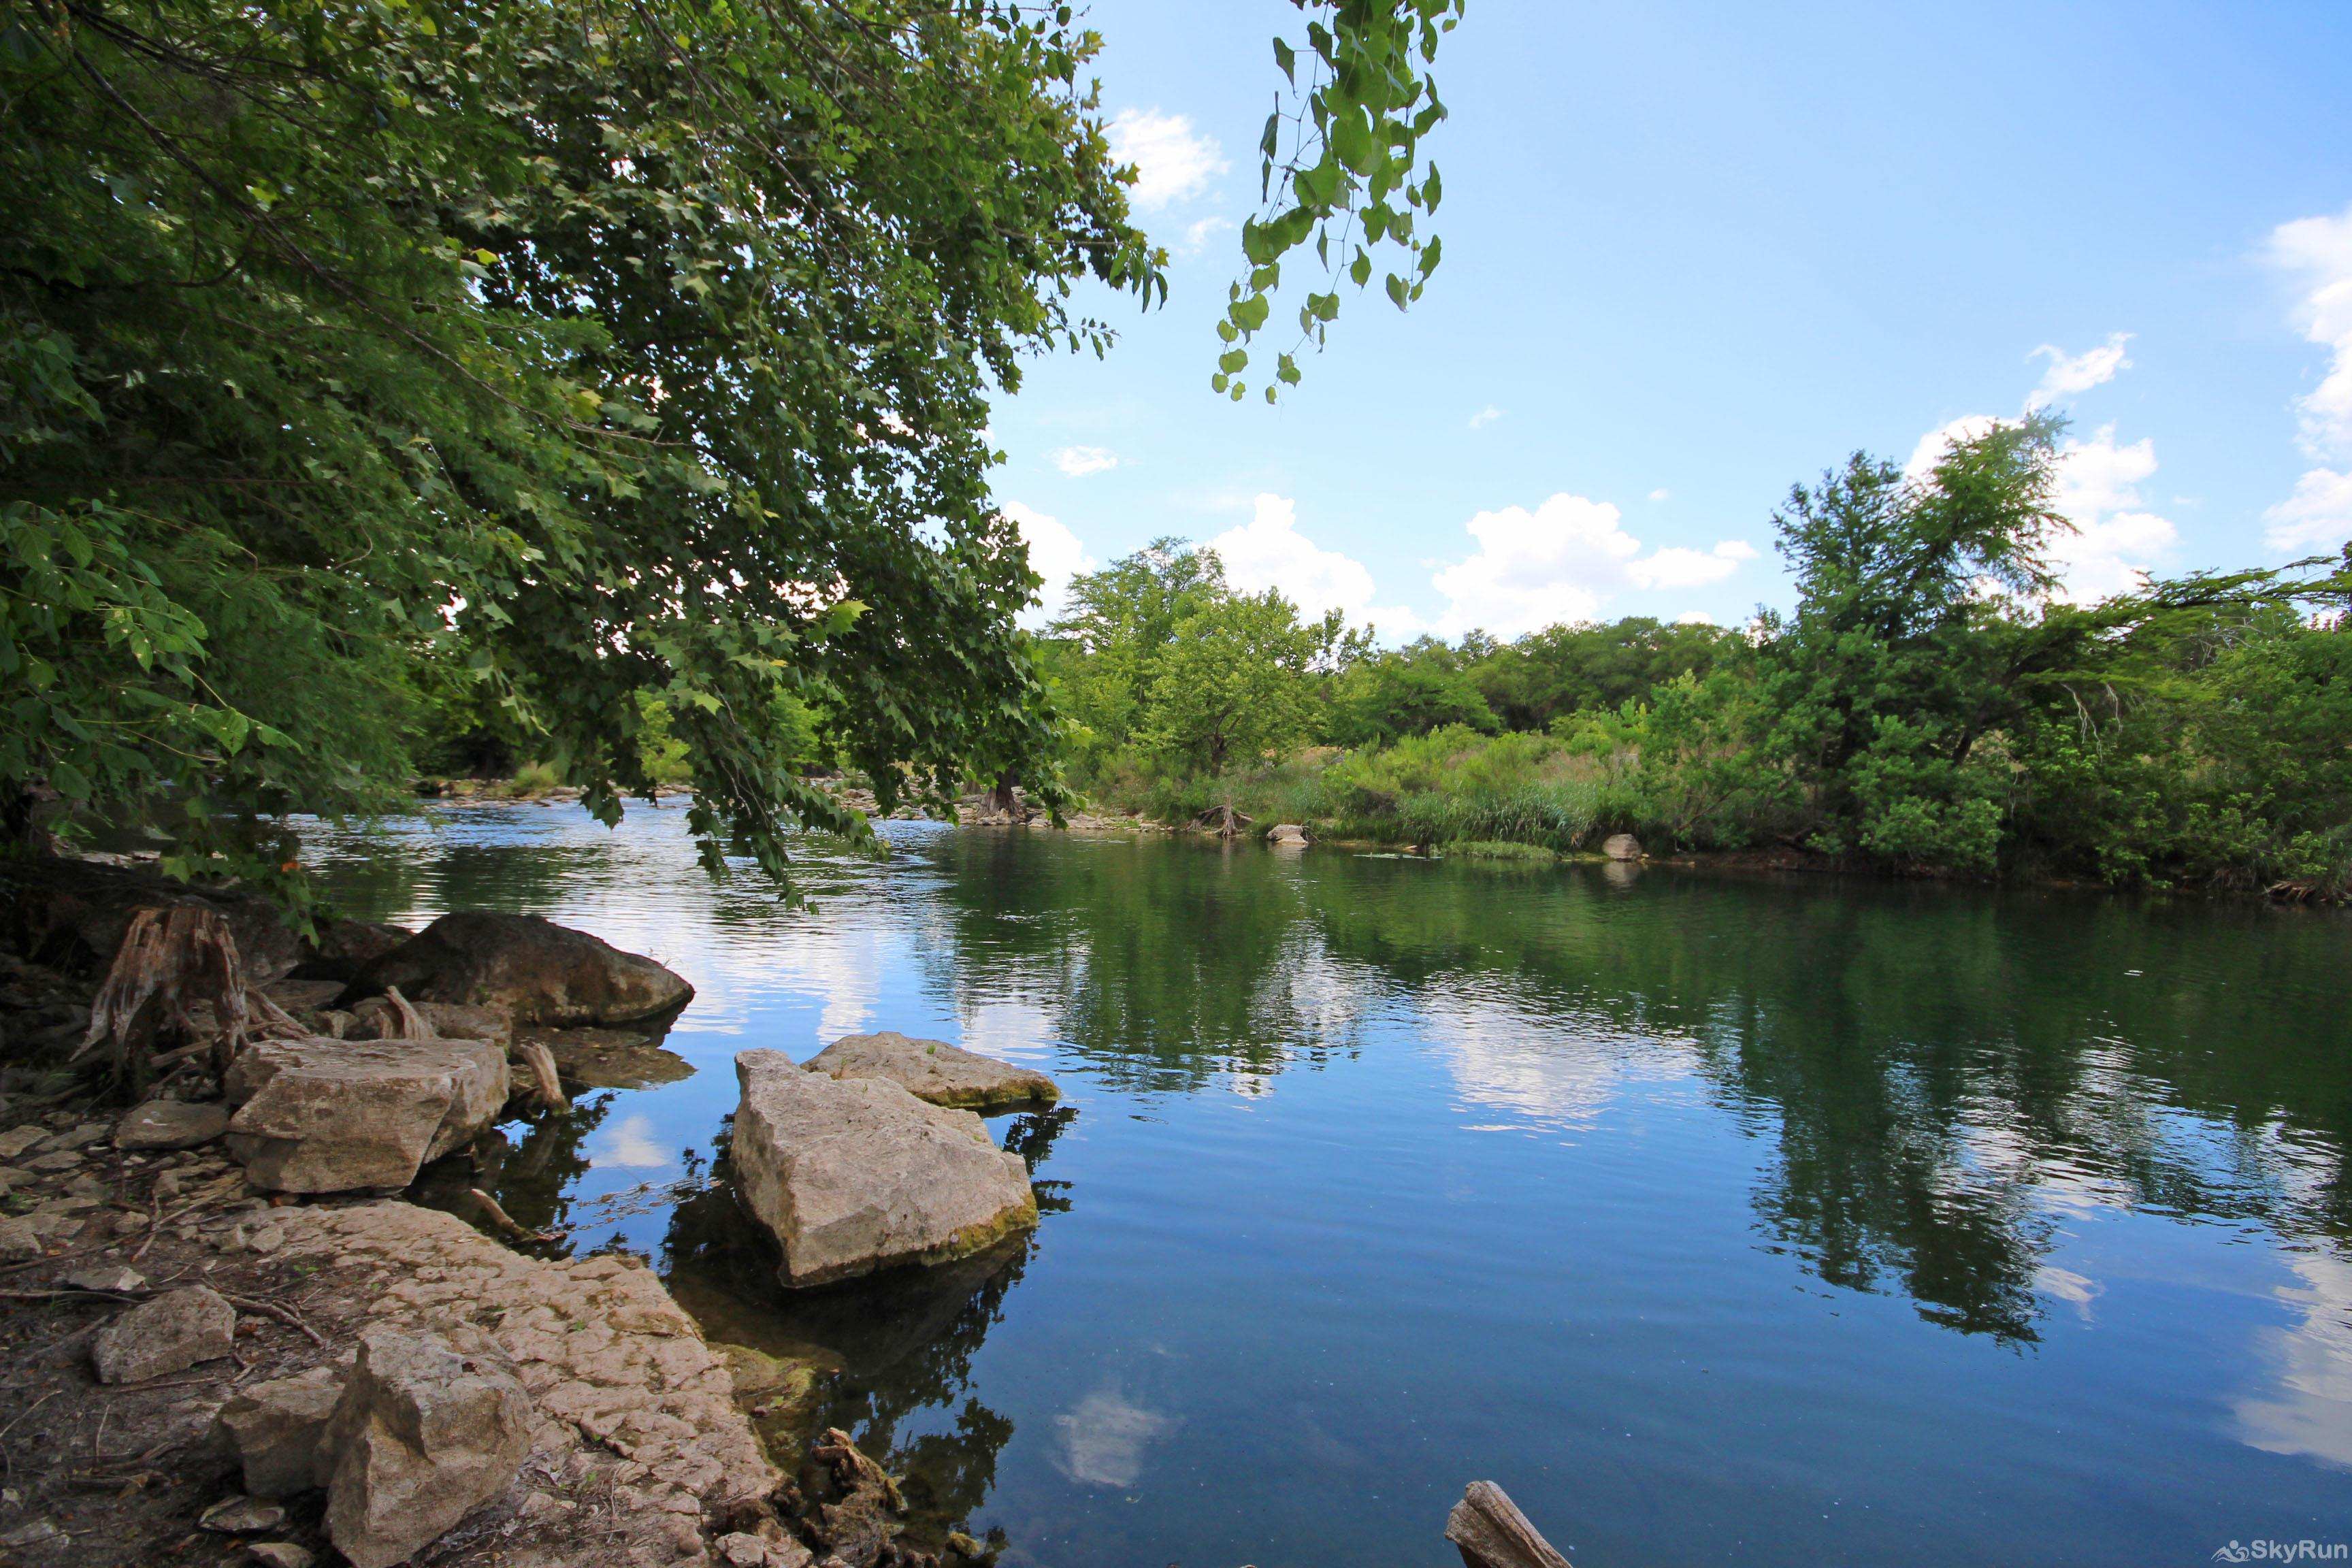 GRUENE VISTA ON THE GUADALUPE Watch the Peaceful Rapids Just Upstream